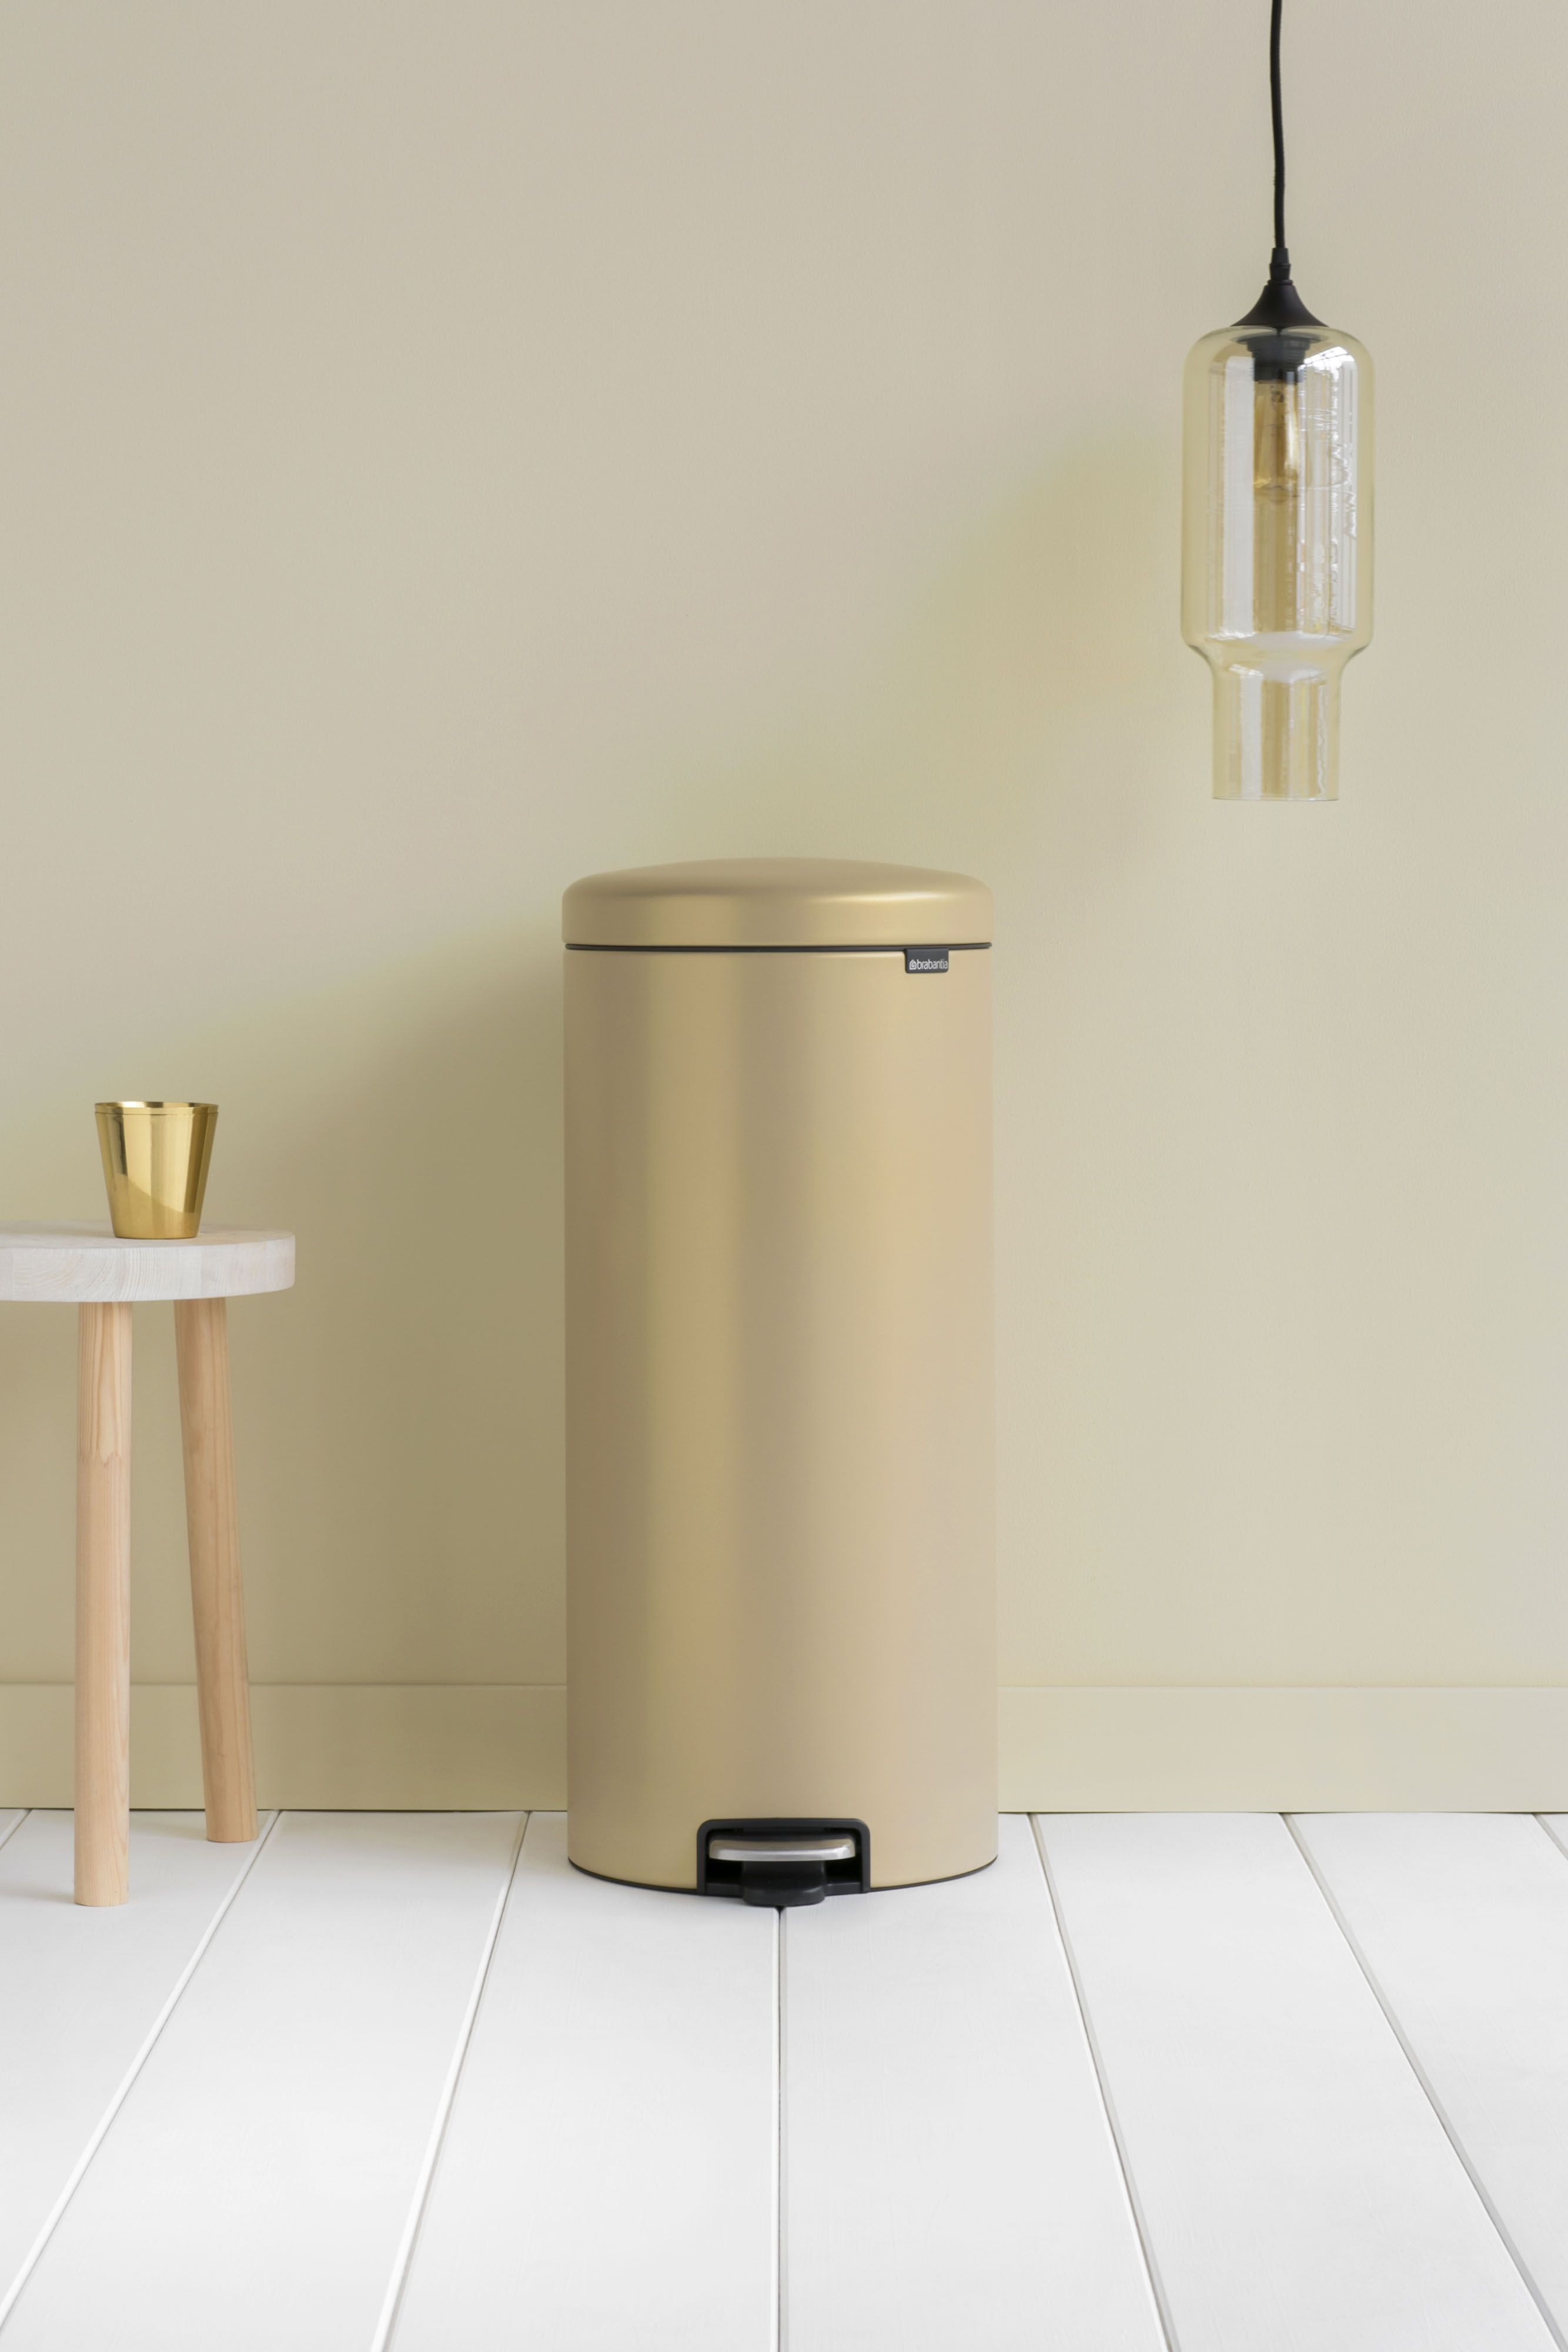 Brabantia Motioncontrol Pedaalemmer 30 L.Let Your 12 20 Or 30 Liter Newicon Blend In With The Serene And